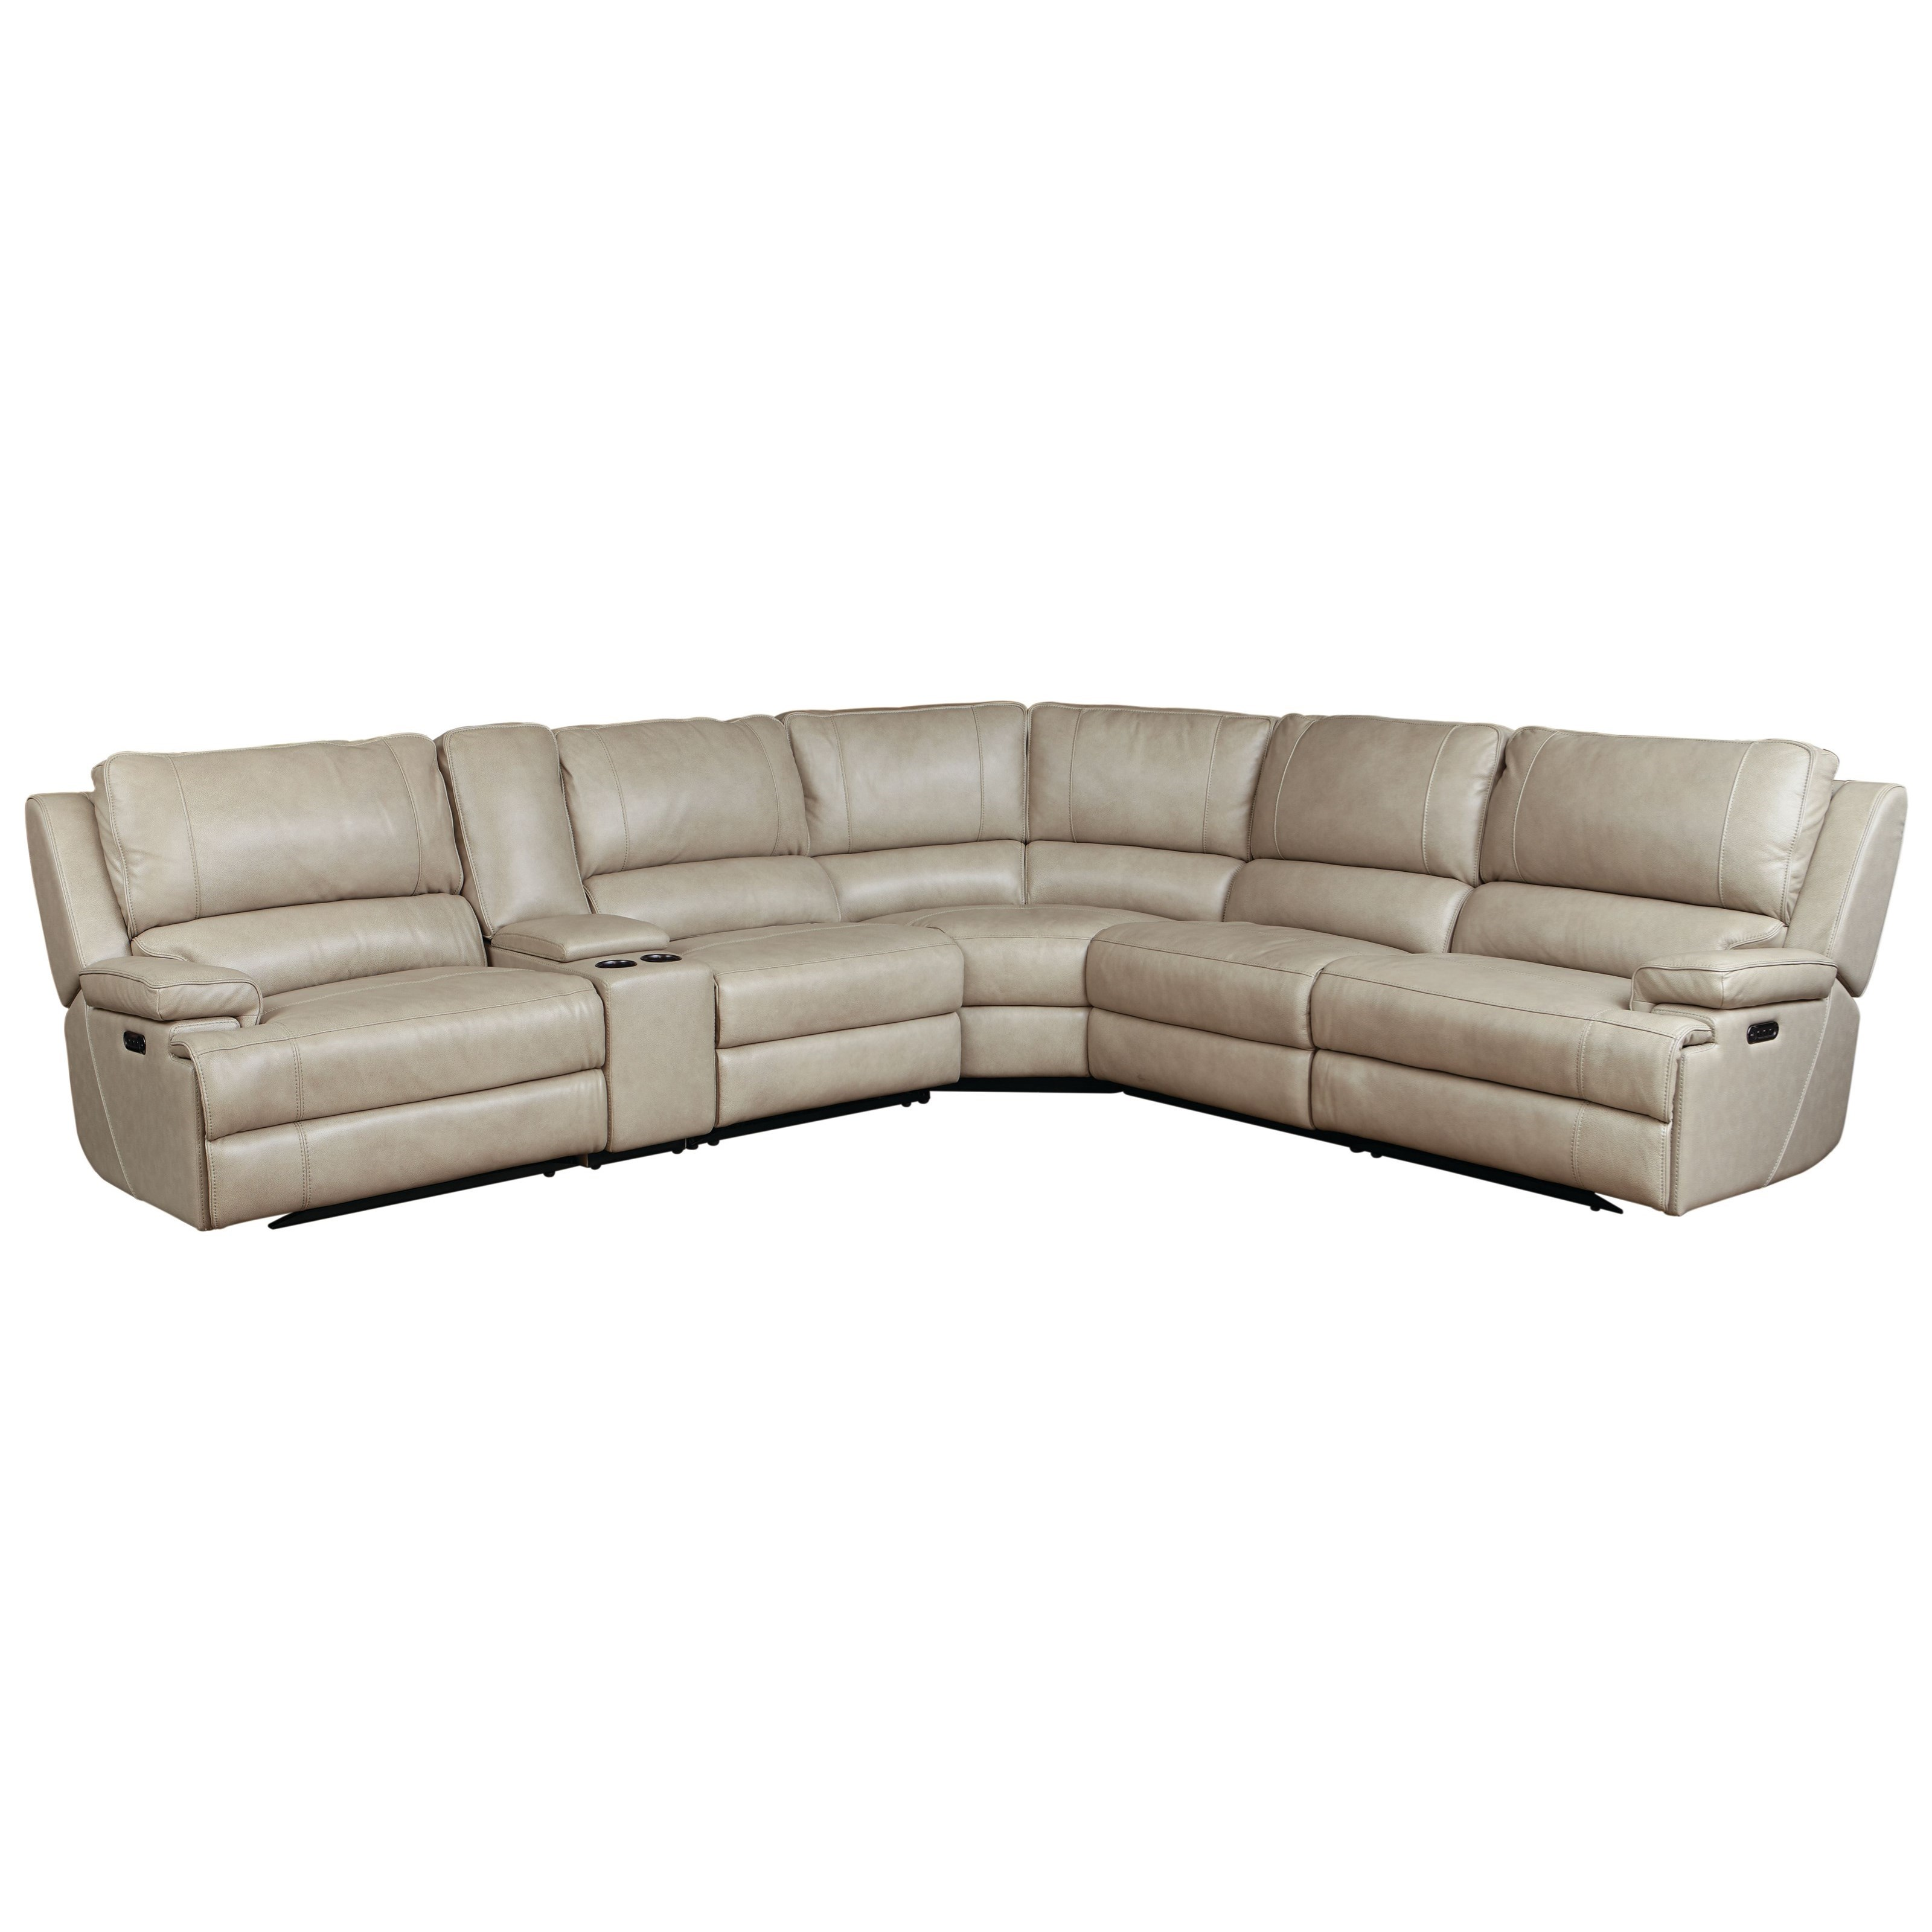 Parsons Club Level  Power Reclining Sectional by Bassett at Bassett of Cool Springs